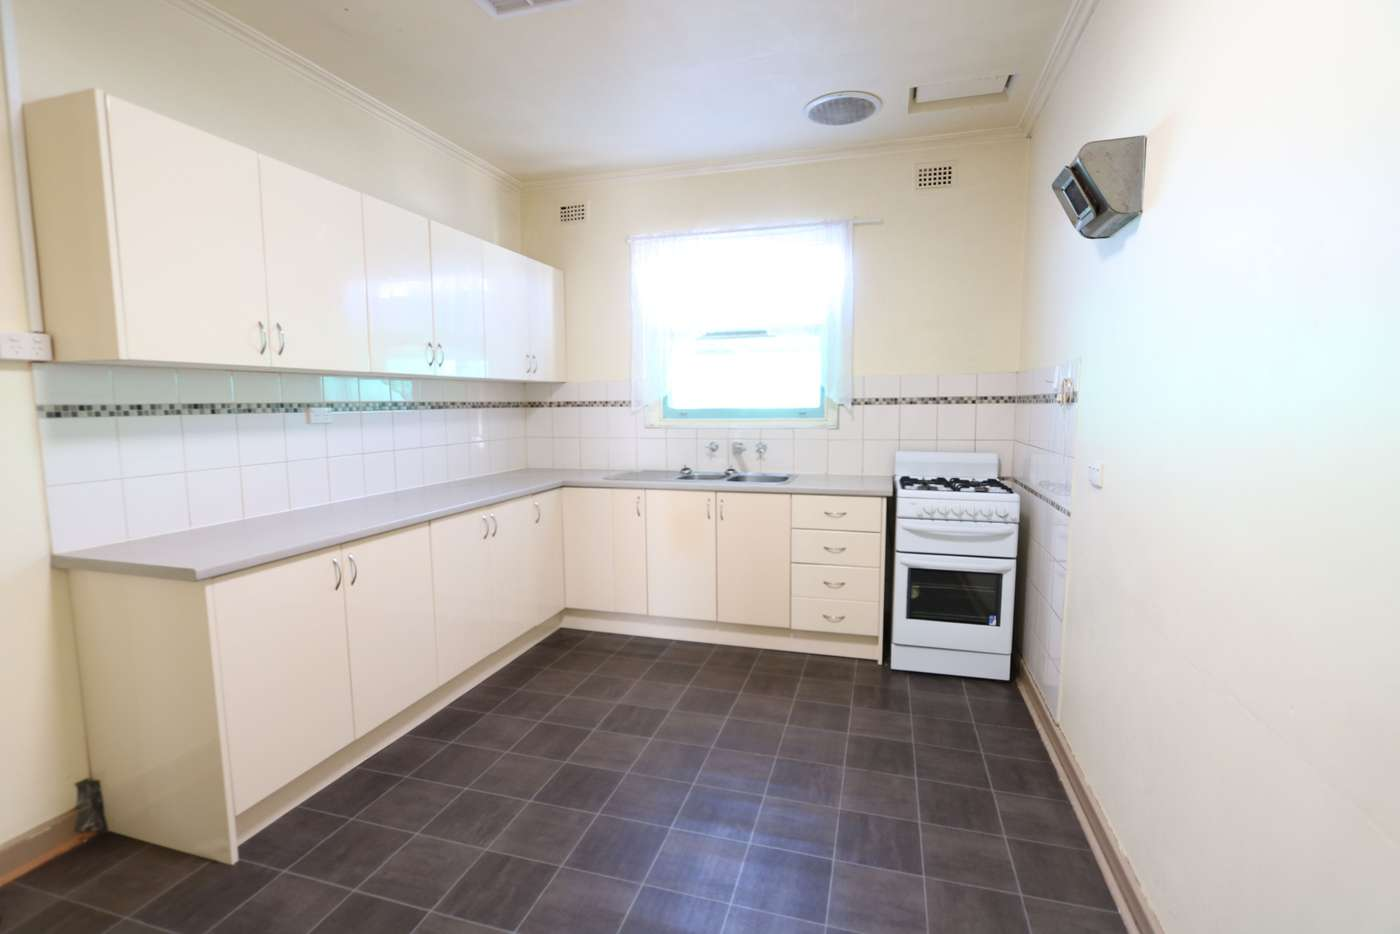 Sixth view of Homely house listing, 53 Young Avenue, West Hindmarsh SA 5007